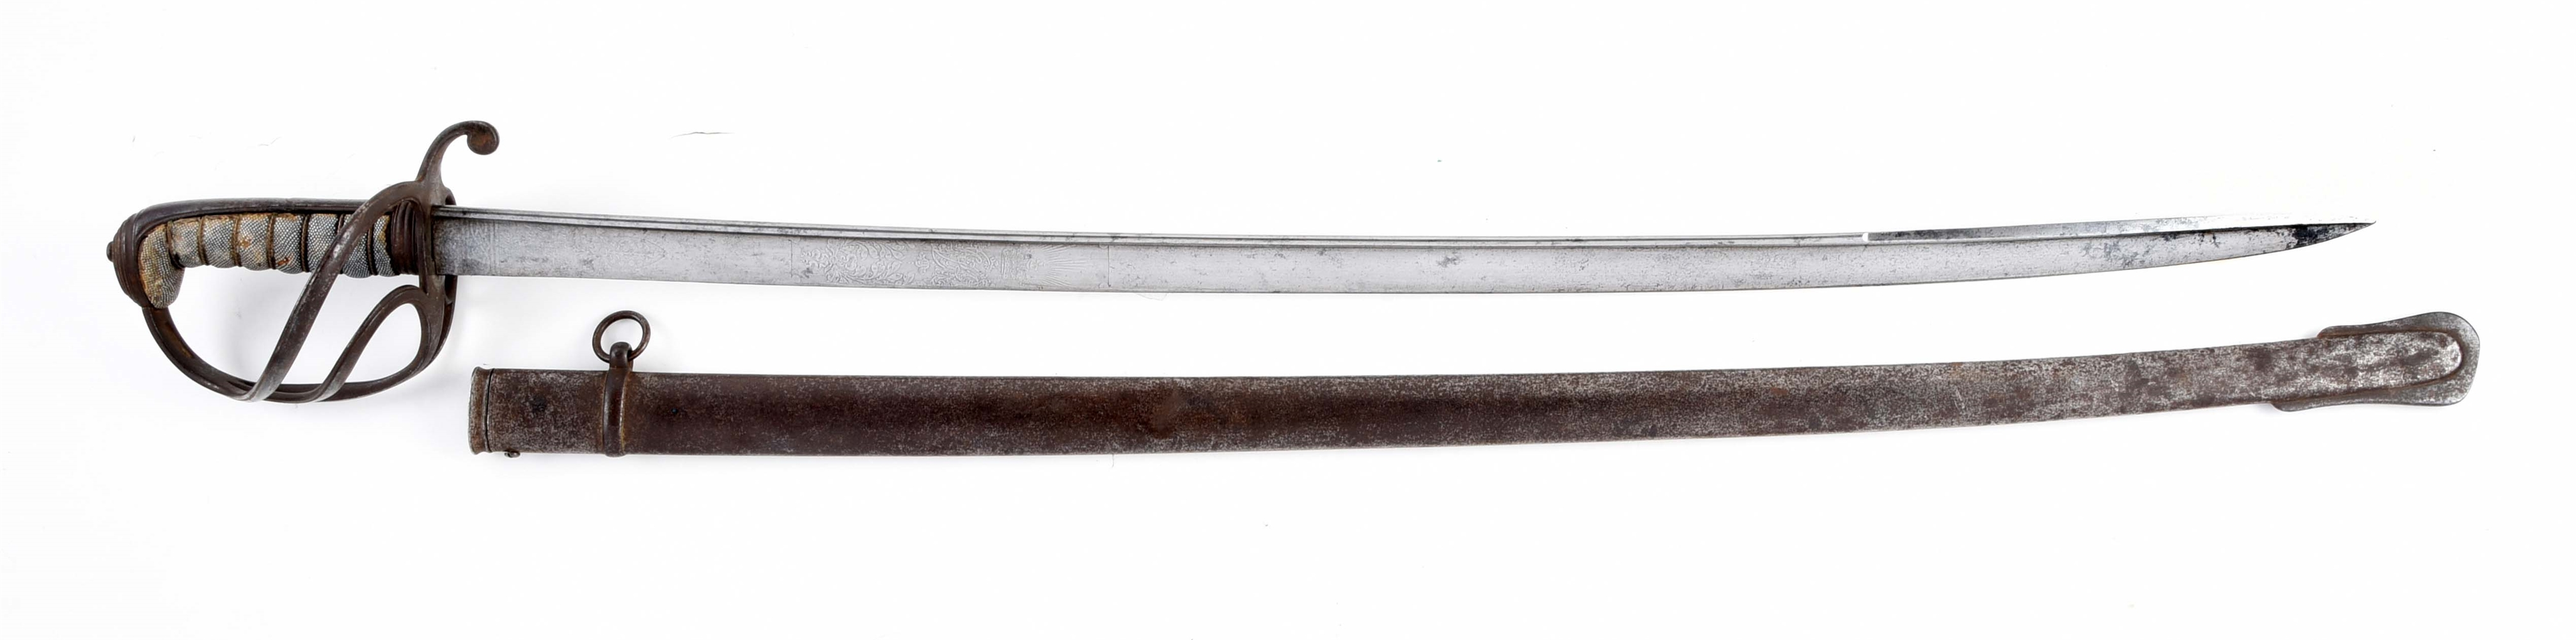 TATHAM 1821 PATTERN PIPEBACK LIGHT CAVALRY SABER MARKED FOR CAPE CAVALRY RIFLEMAN.